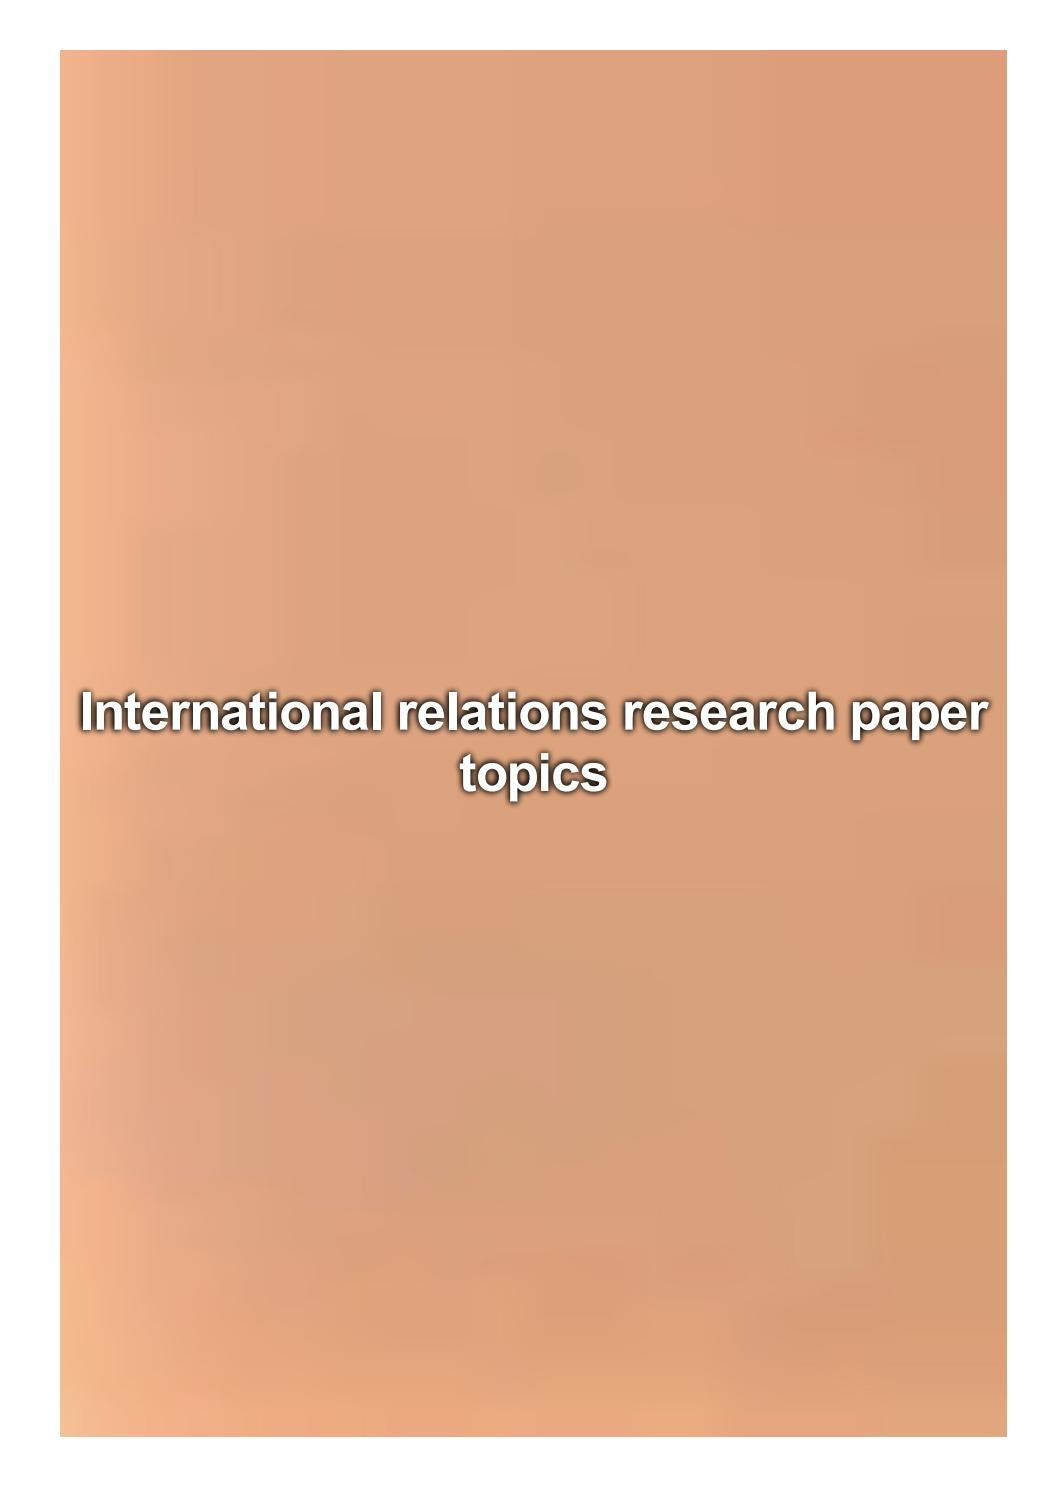 Research Paper Topics International Relations